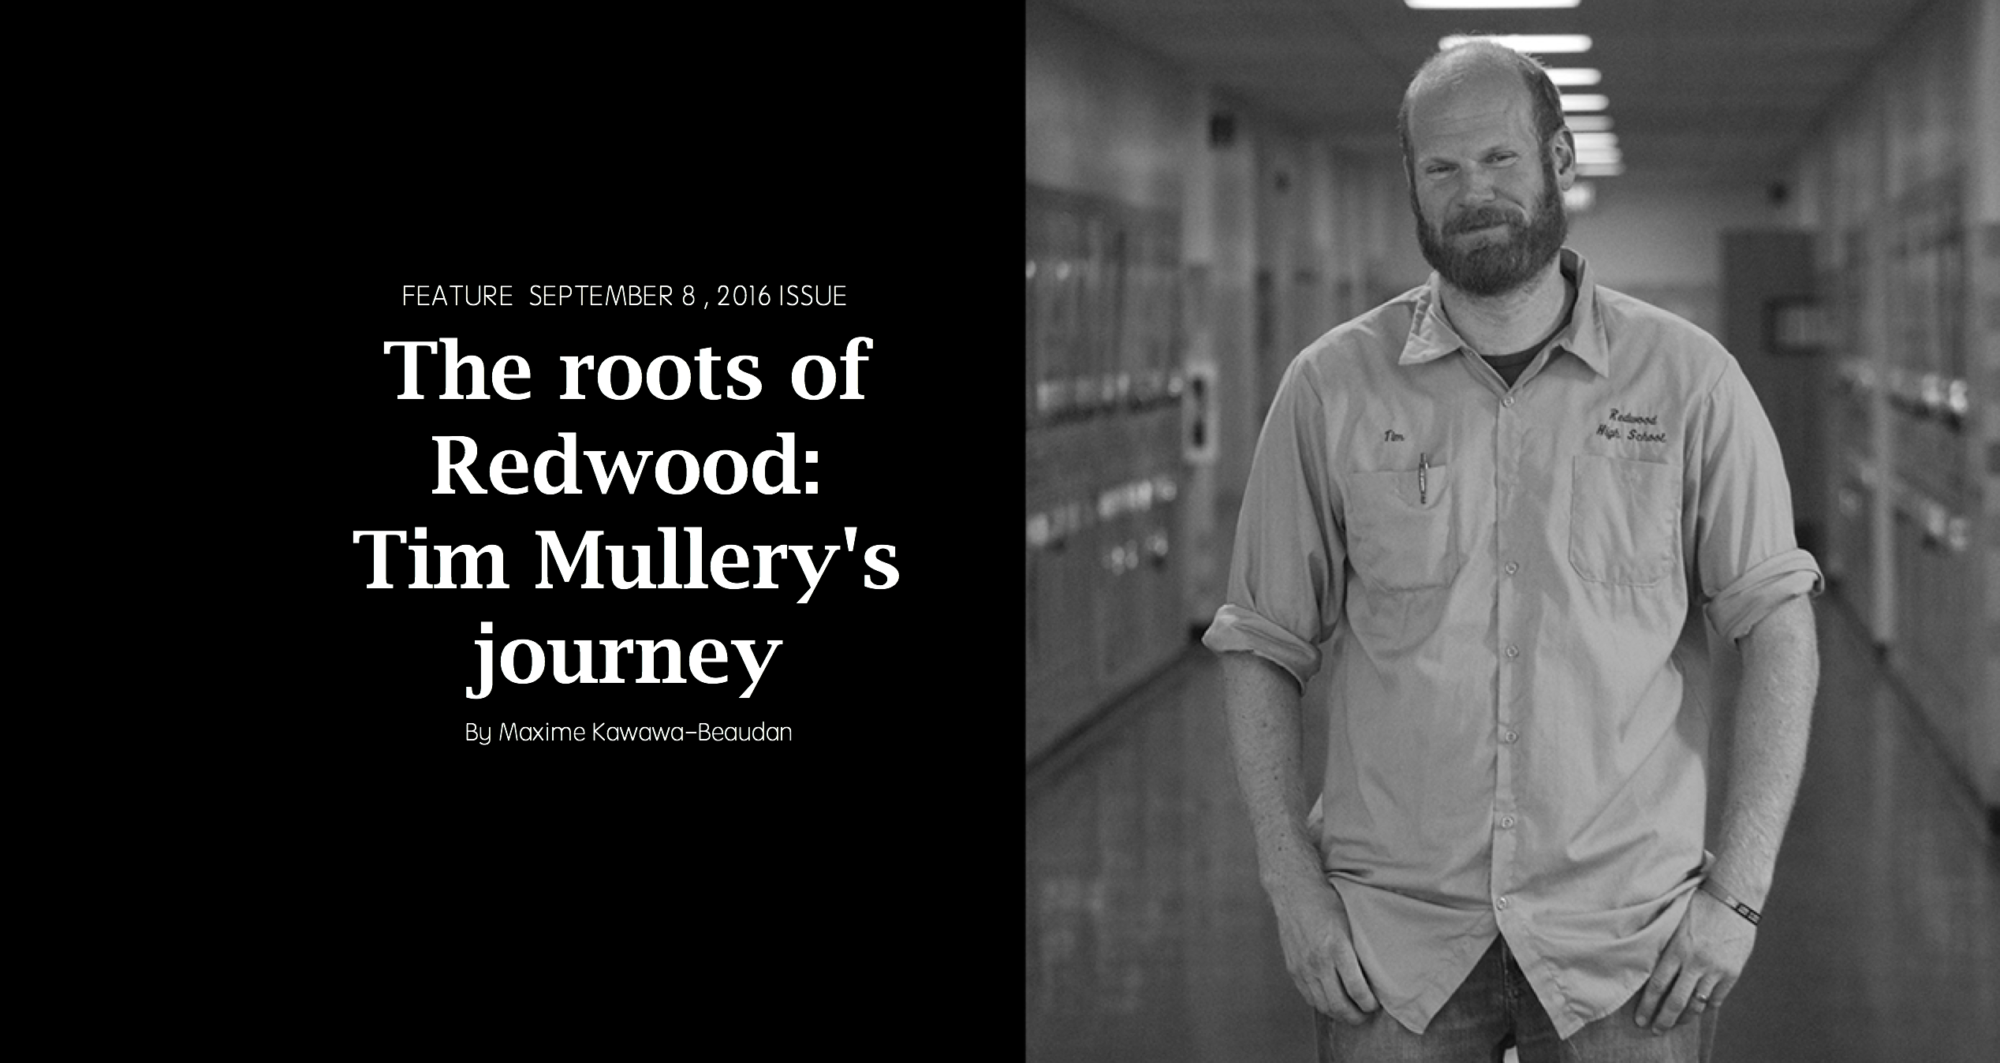 The roots of Redwood: Tim Mullery's journey